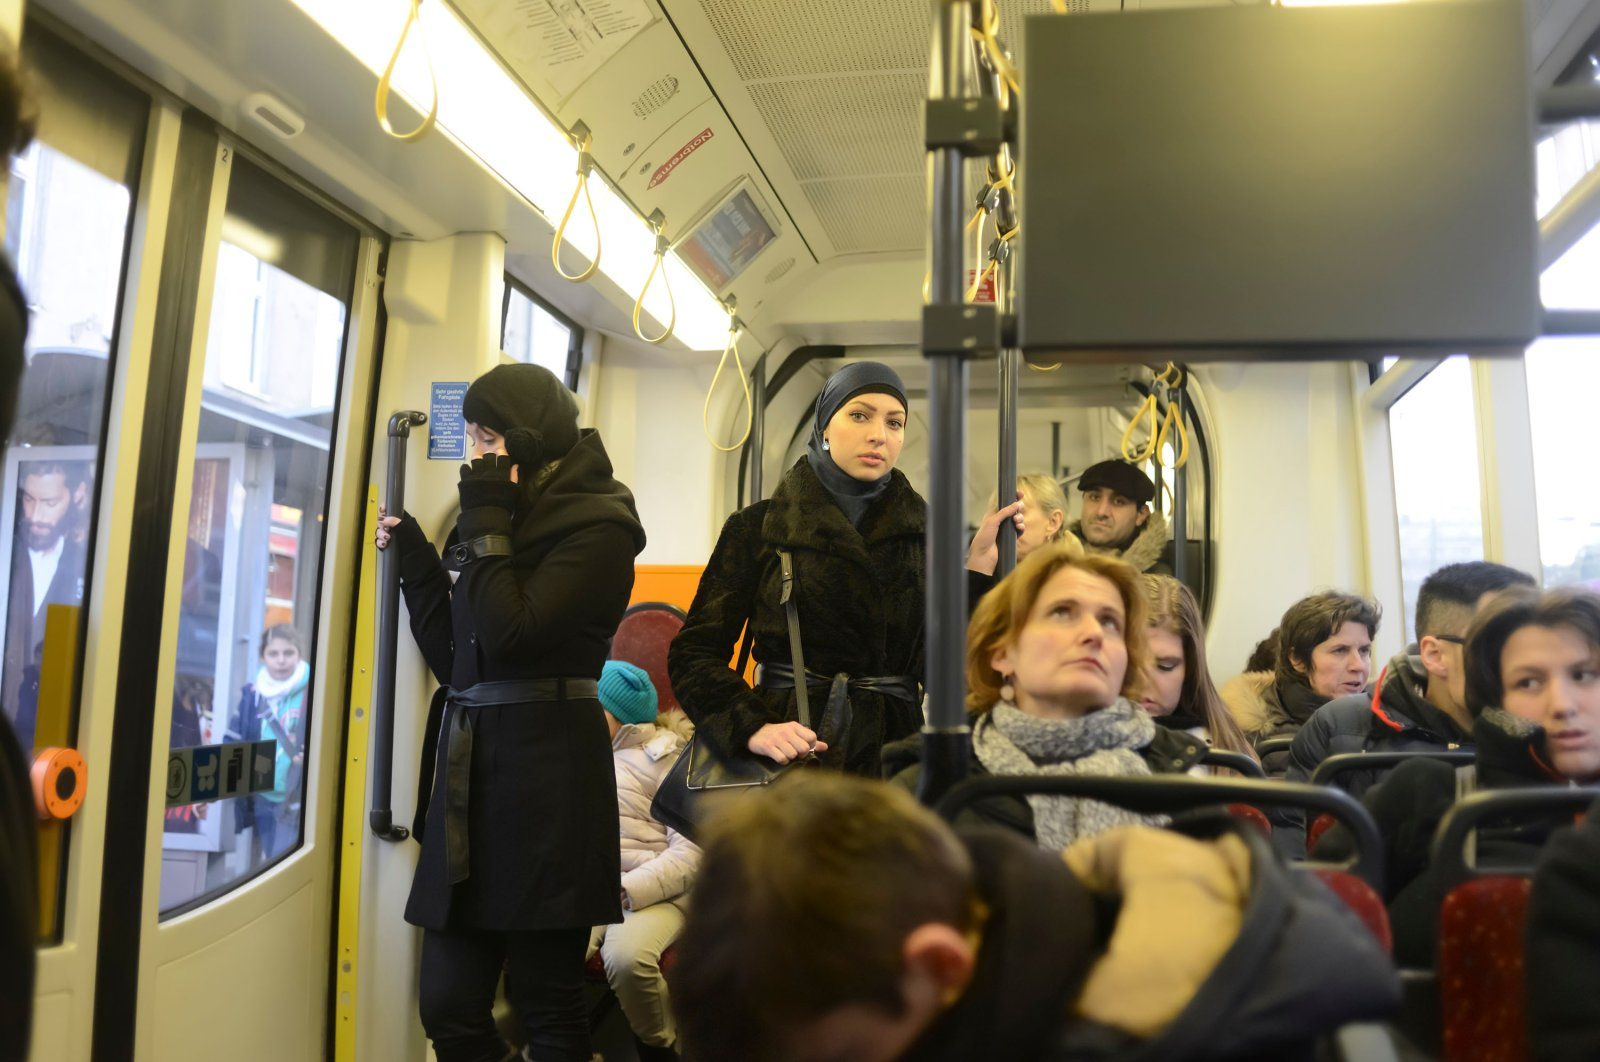 A Muslim woman looks at a camera while using public transportation, Vienna, Austria, March 12, 2013. (Shutterstock Photo)